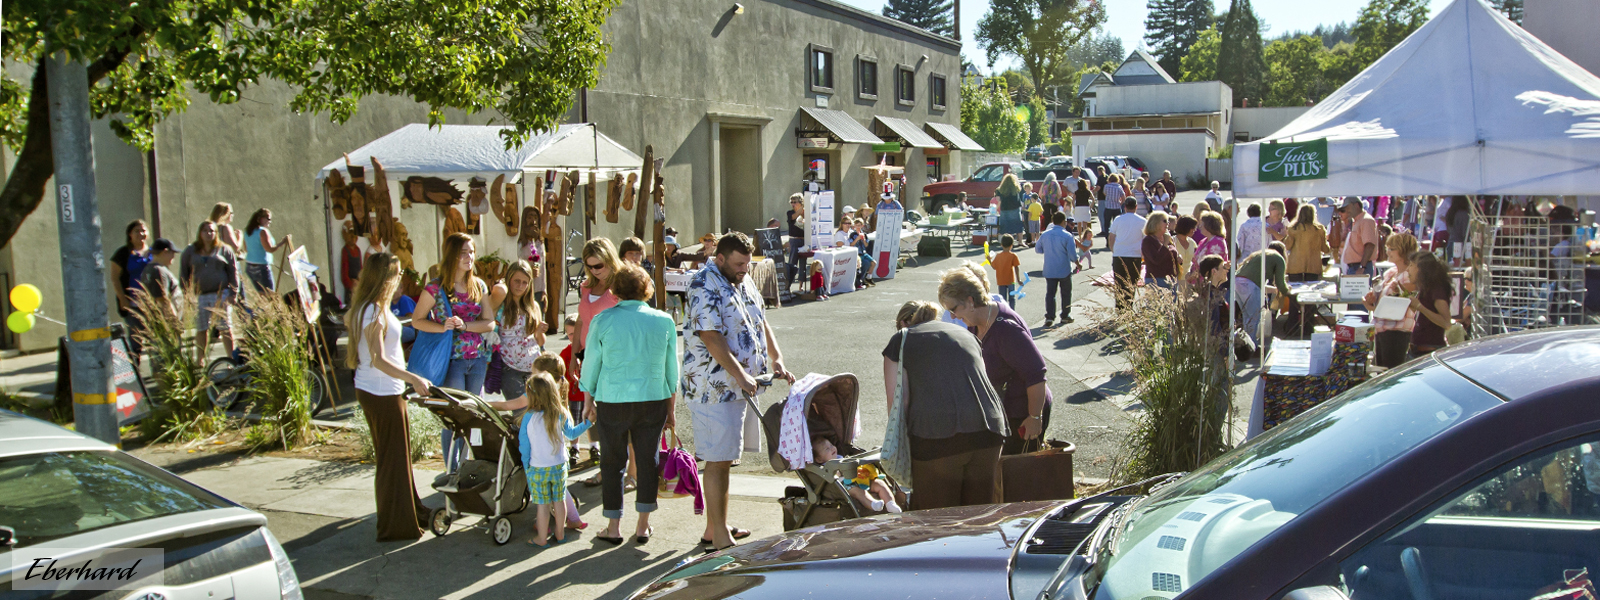 Downtown Market in Willits California